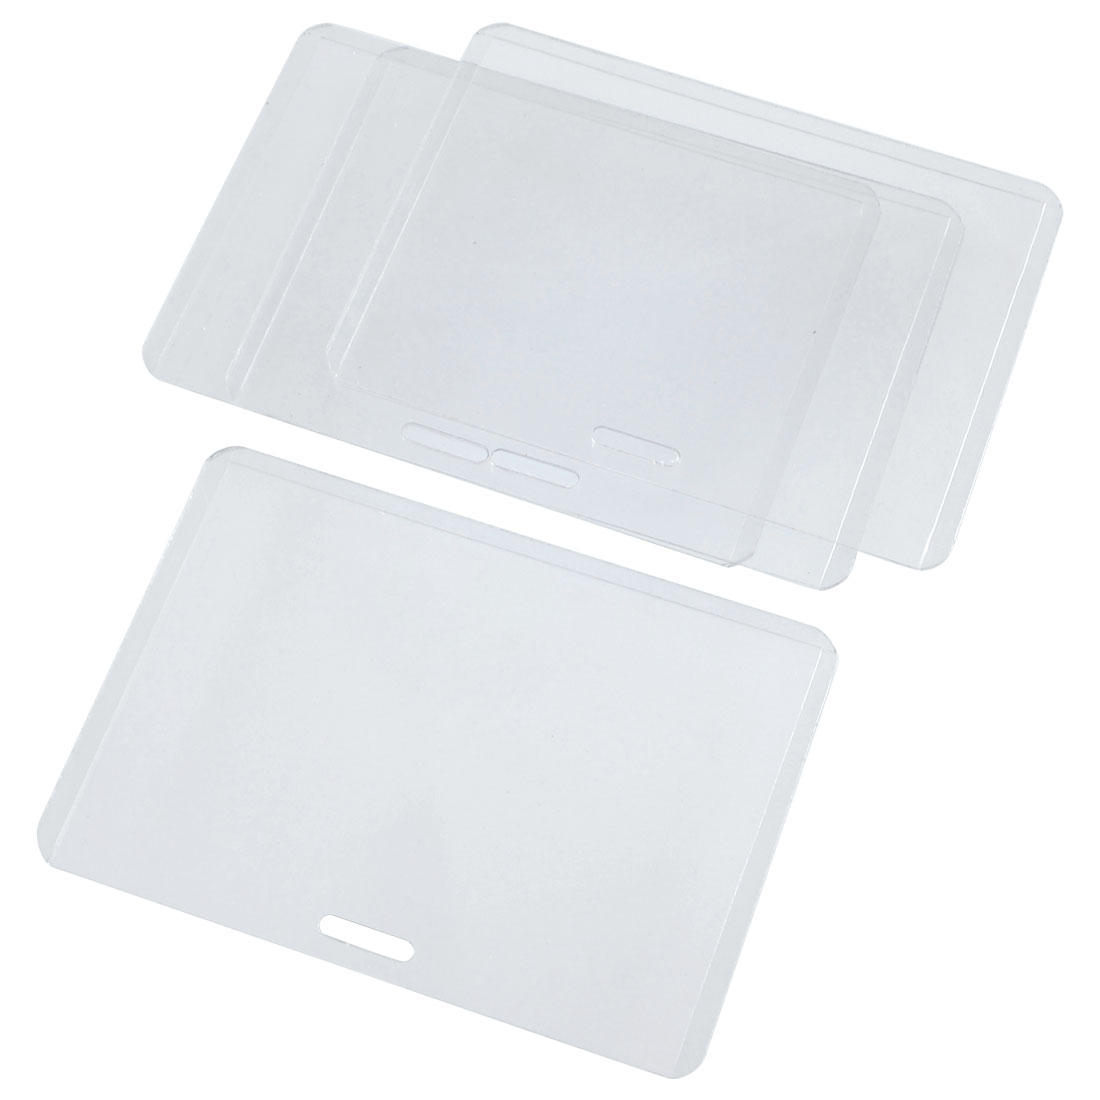 Plastic Horizontal Exhibition Office ID Card Holders Clear 4 Pieces